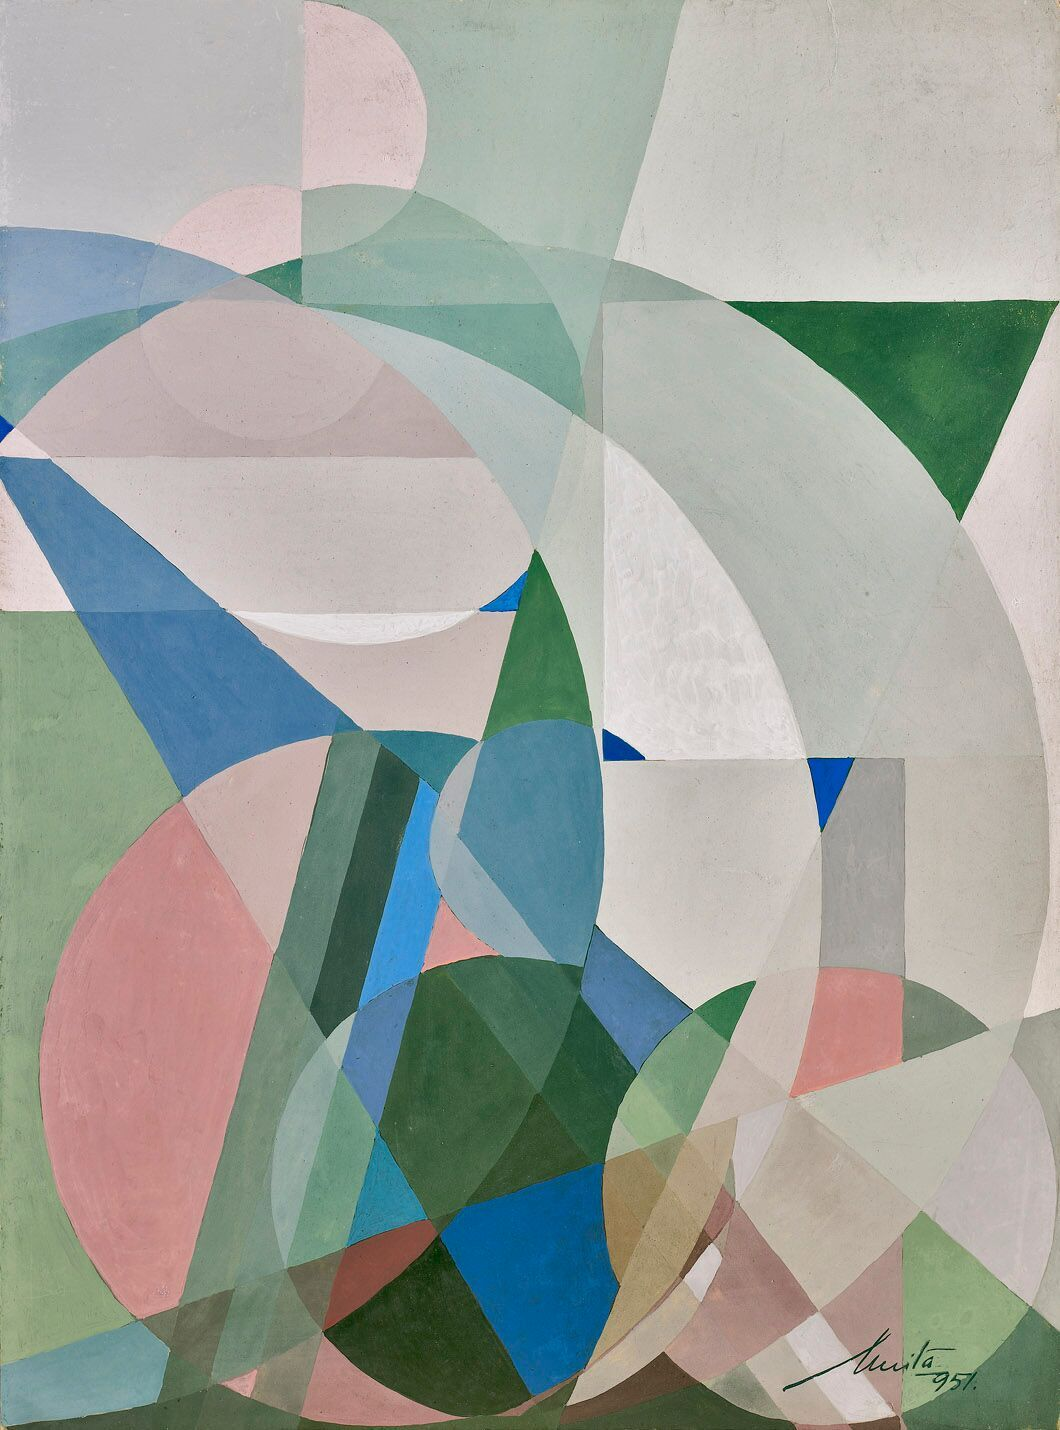 Anita Payró (1897-1980)   Untitled Abstract Composition , 1951  oil and tempera on board 14 1/2 x 10 3/4 inches; 36.8 x 27.3 centimeters